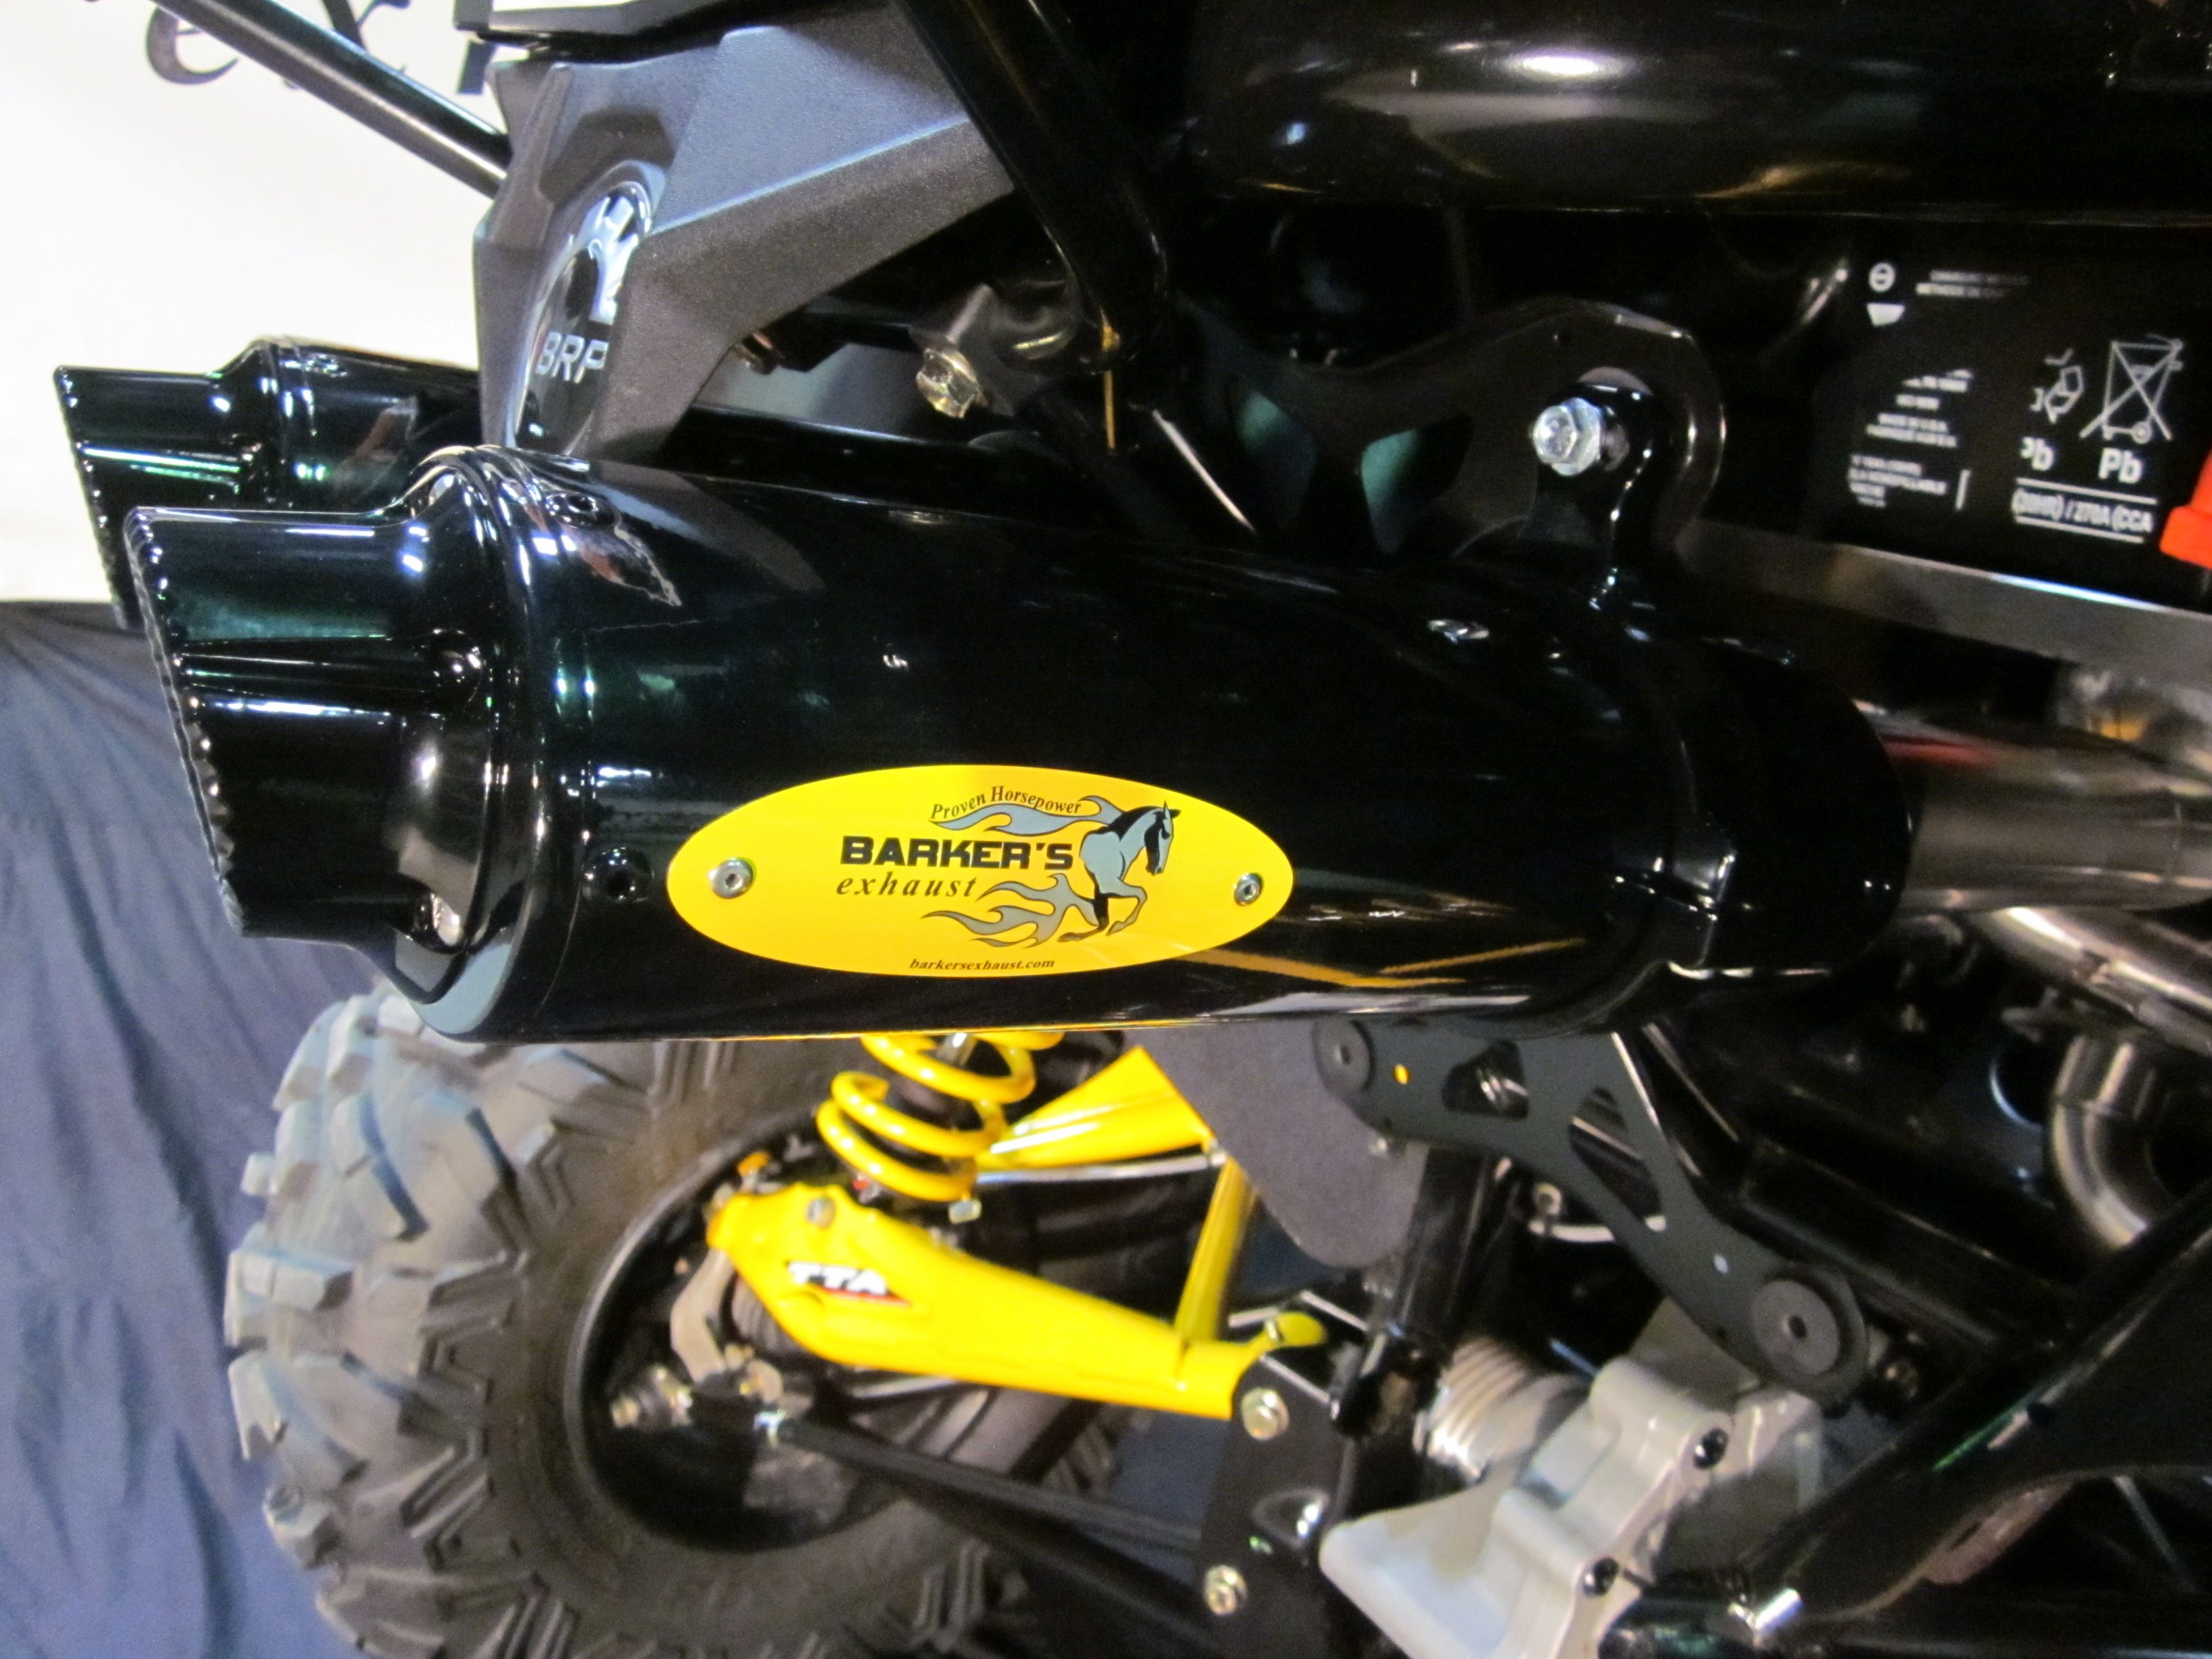 Barkers custom exhaust system on a can am maverick can tip shown in black